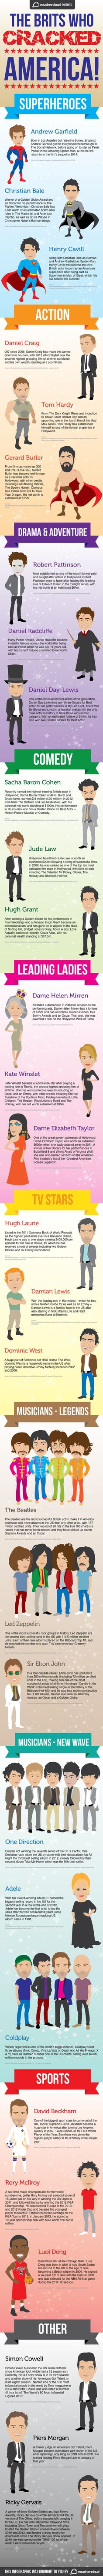 The Brits that cracked America #Infographic from vouchercloud  #celebrity #juice #superheroes